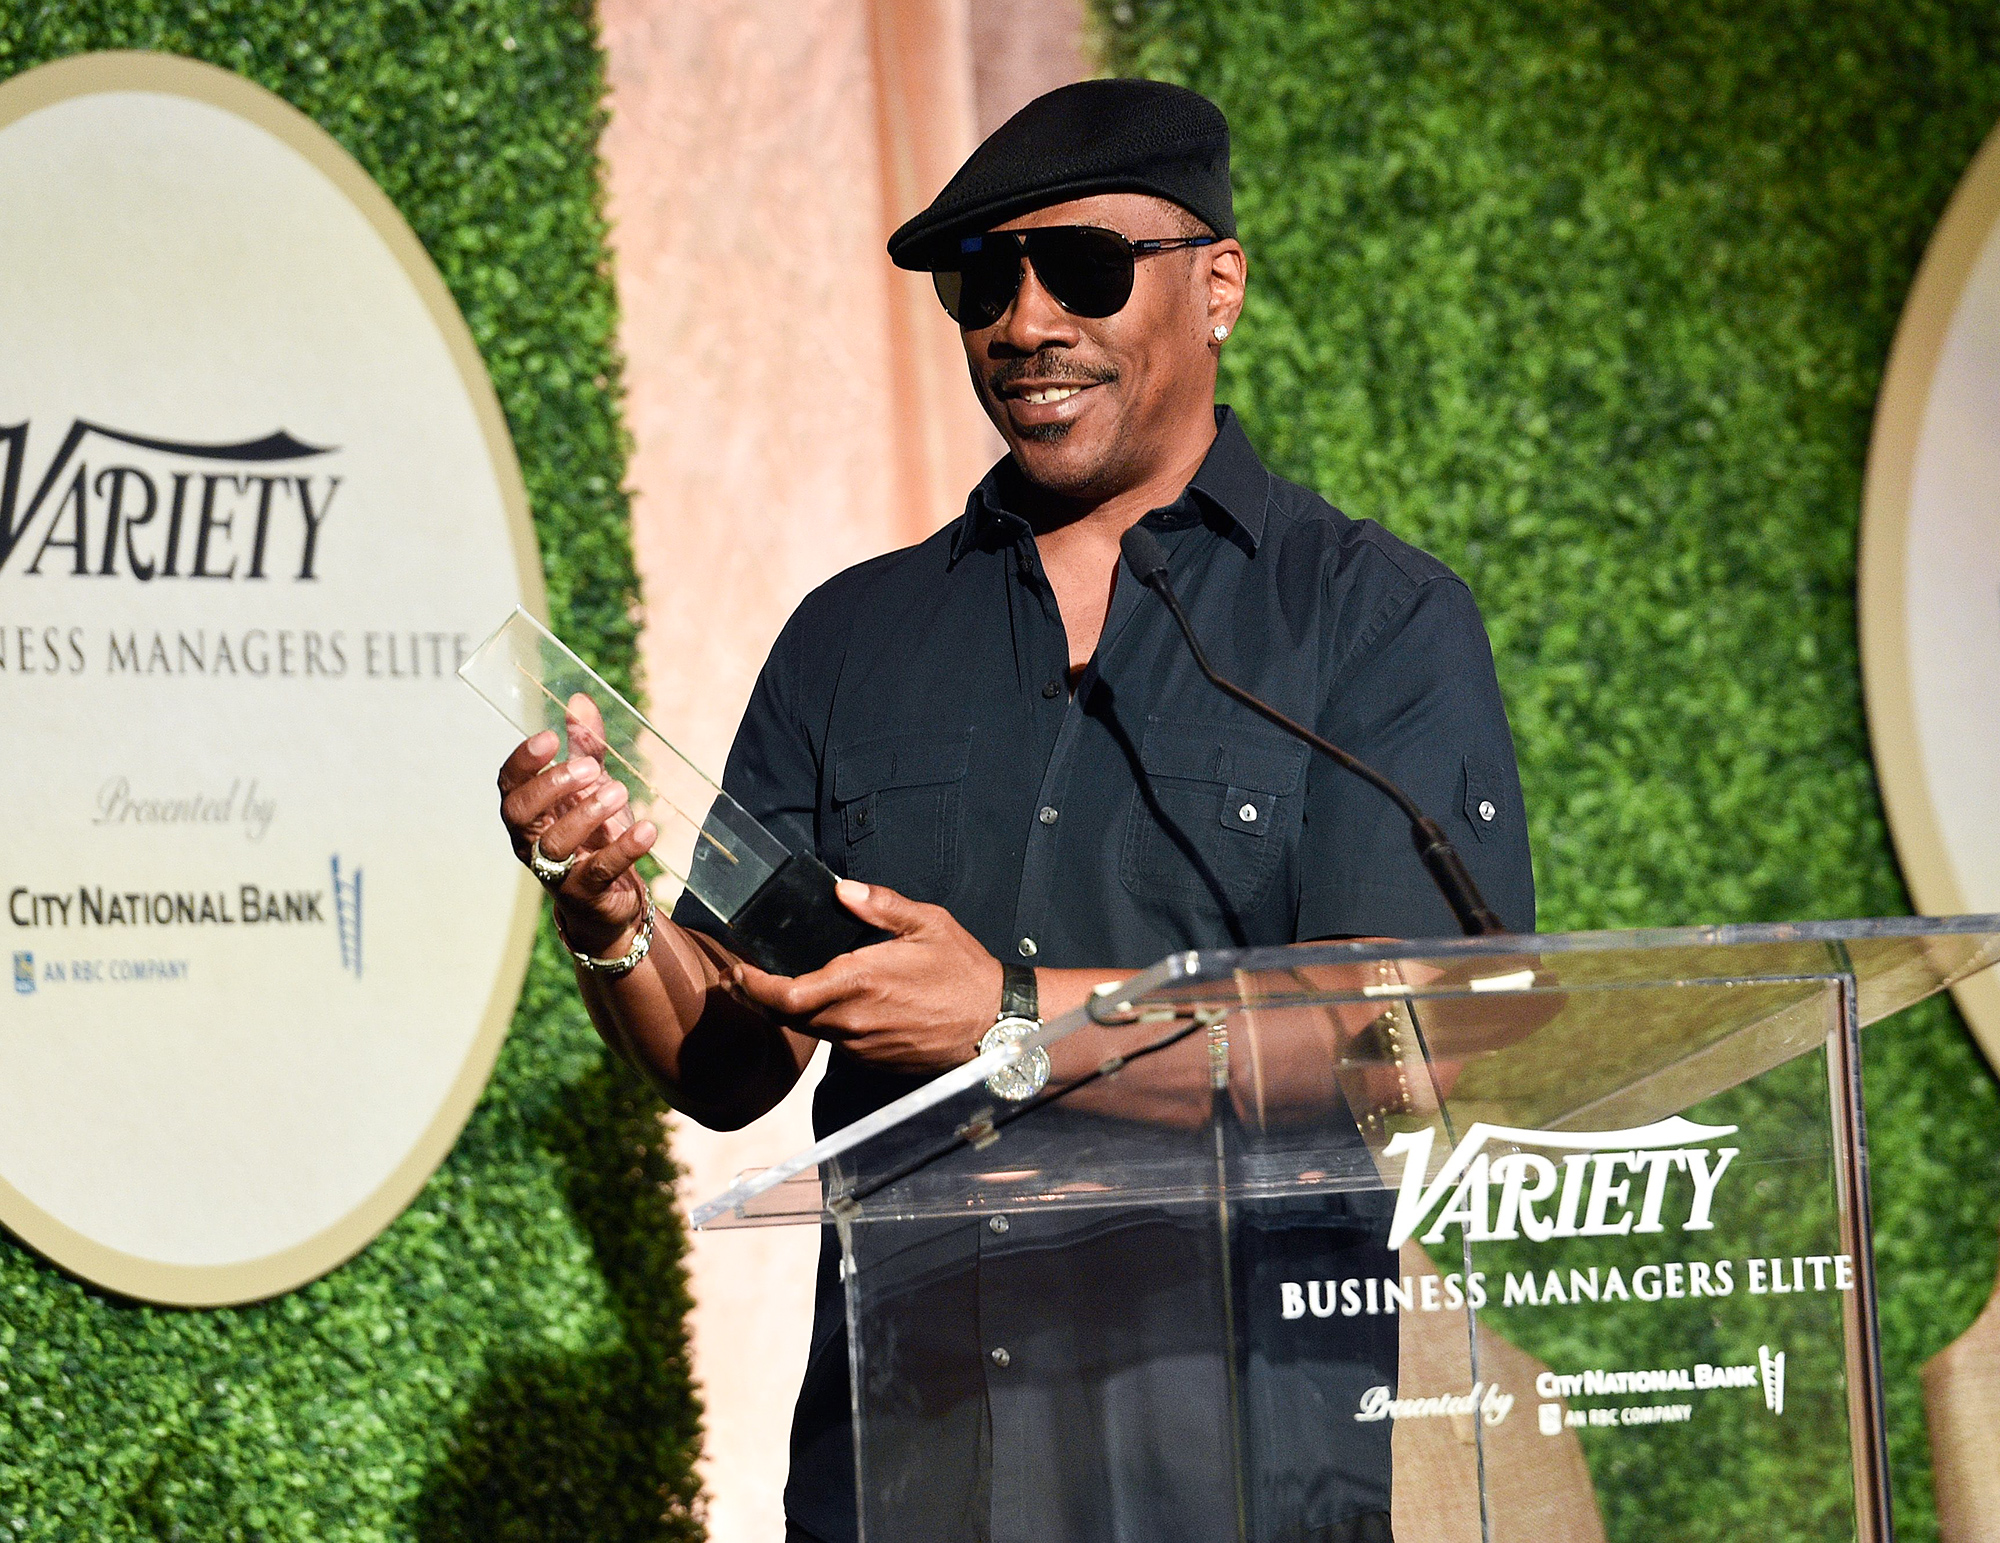 Variety Business Managers Elite Breakfast, Los Angeles, USA - 27 Oct 2017